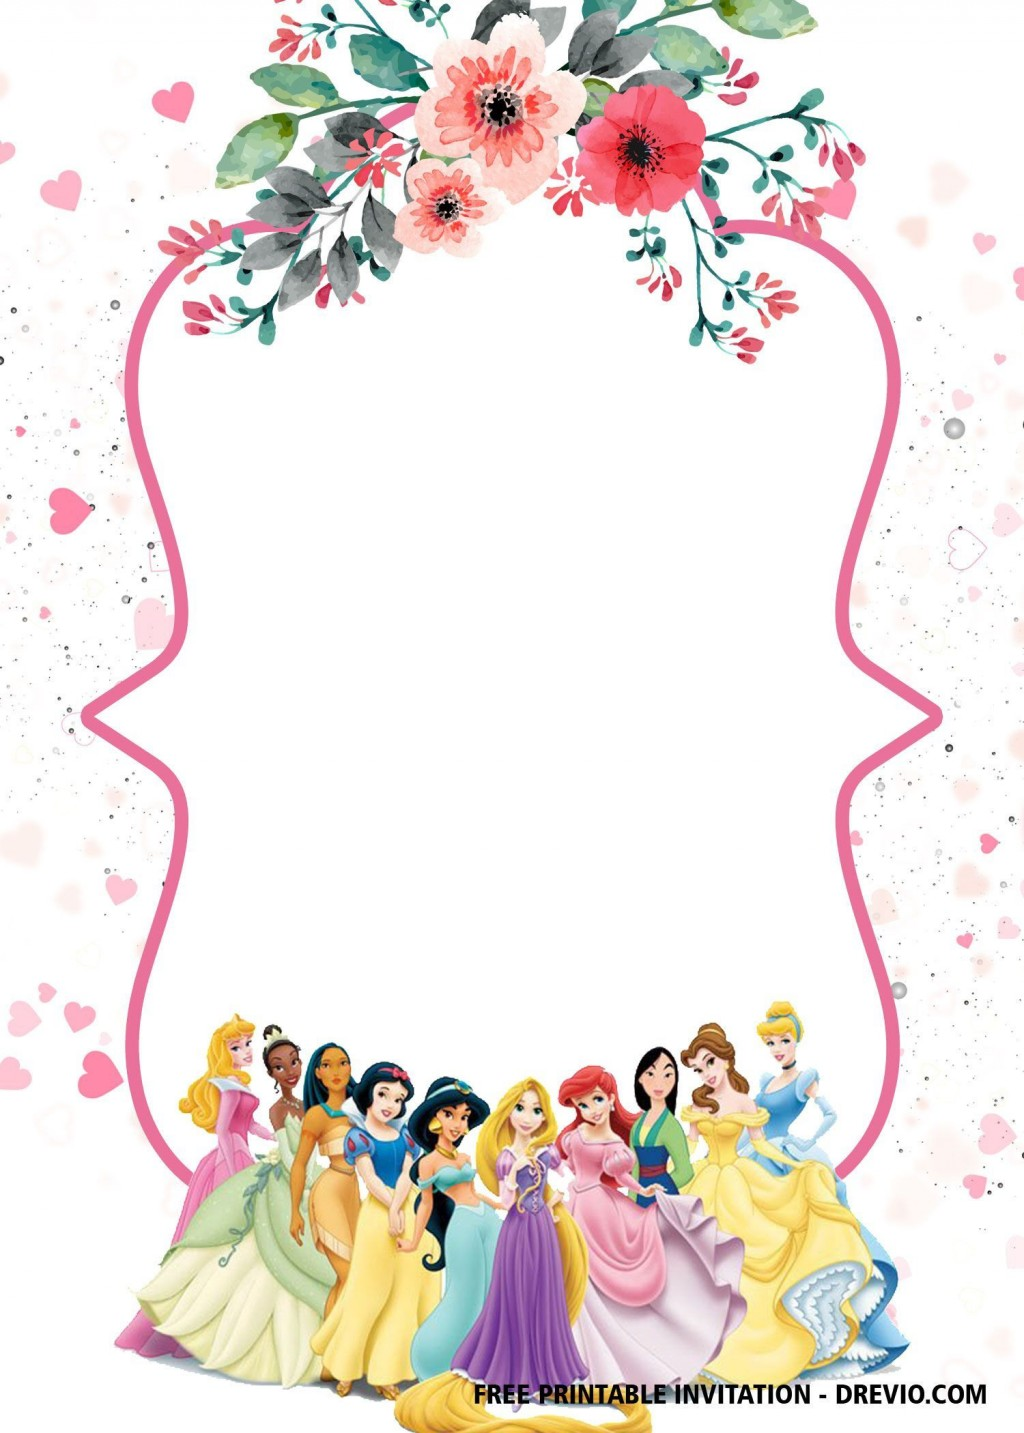 000 Top Disney Princes Invitation Template Highest Quality  Downloadable Party Free Printable BirthdayLarge